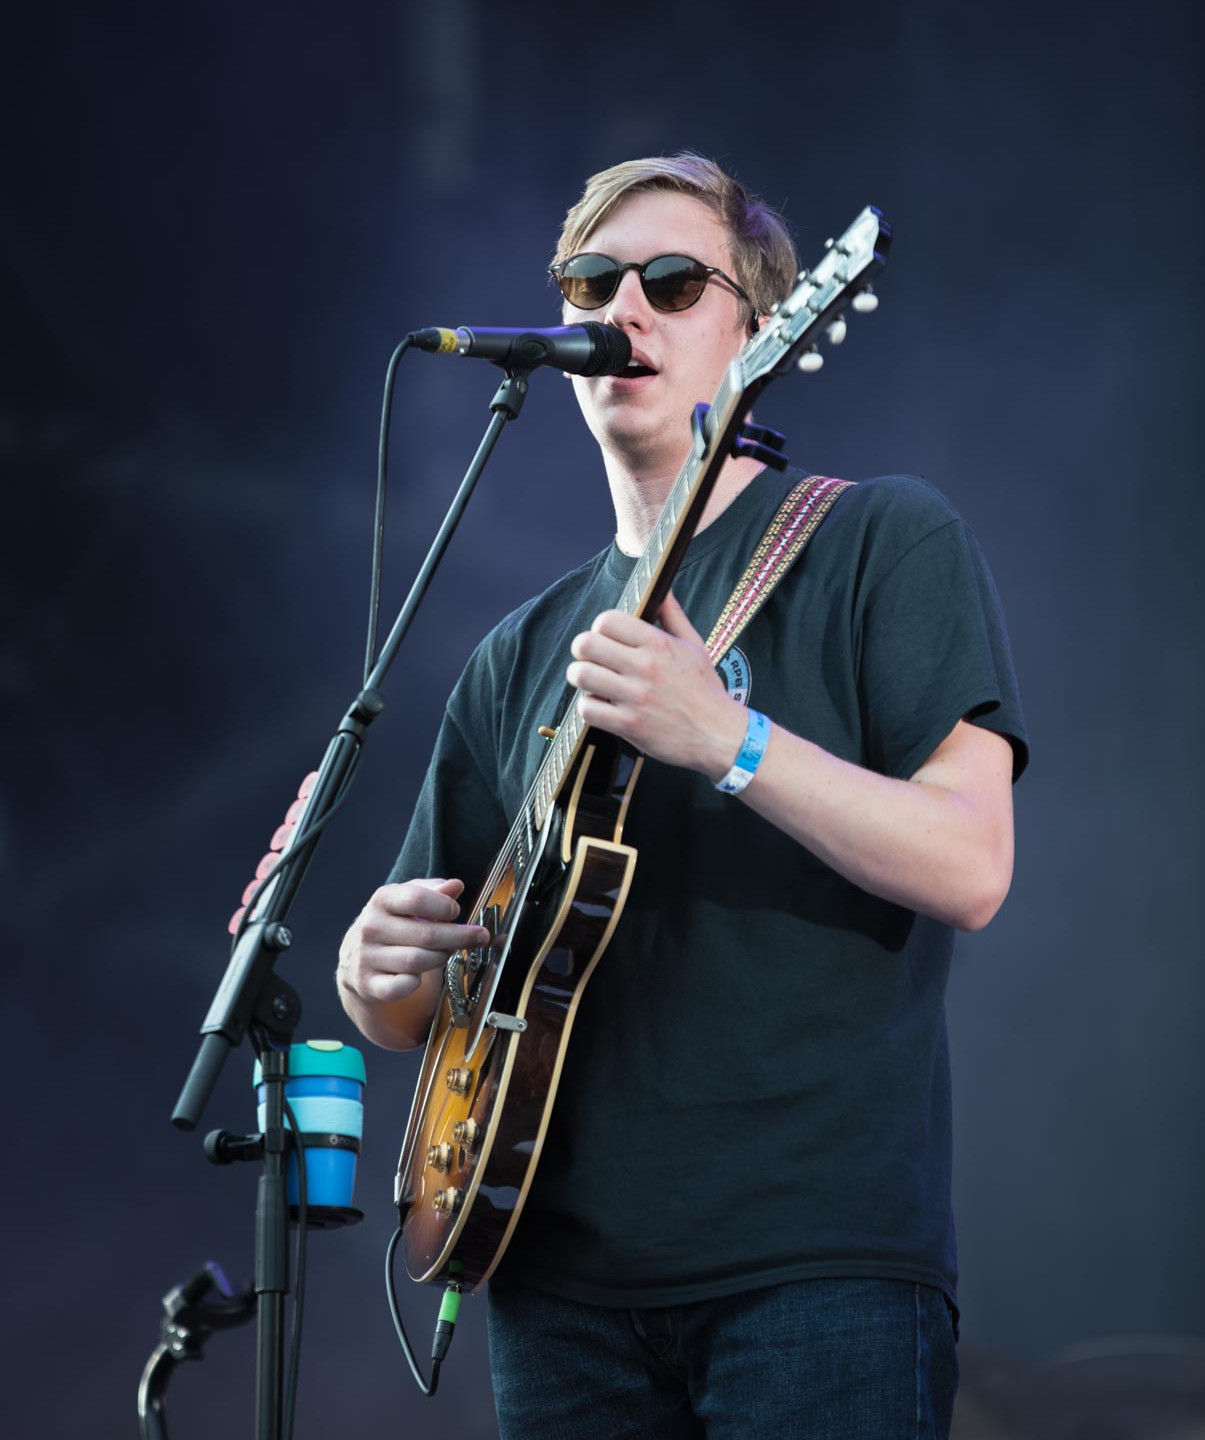 The English folk rock singer George Ezra, live at Rock en Seine festival, Paris, France, August 2017.  On assignment for ZYVA Magazine All rights reserved.